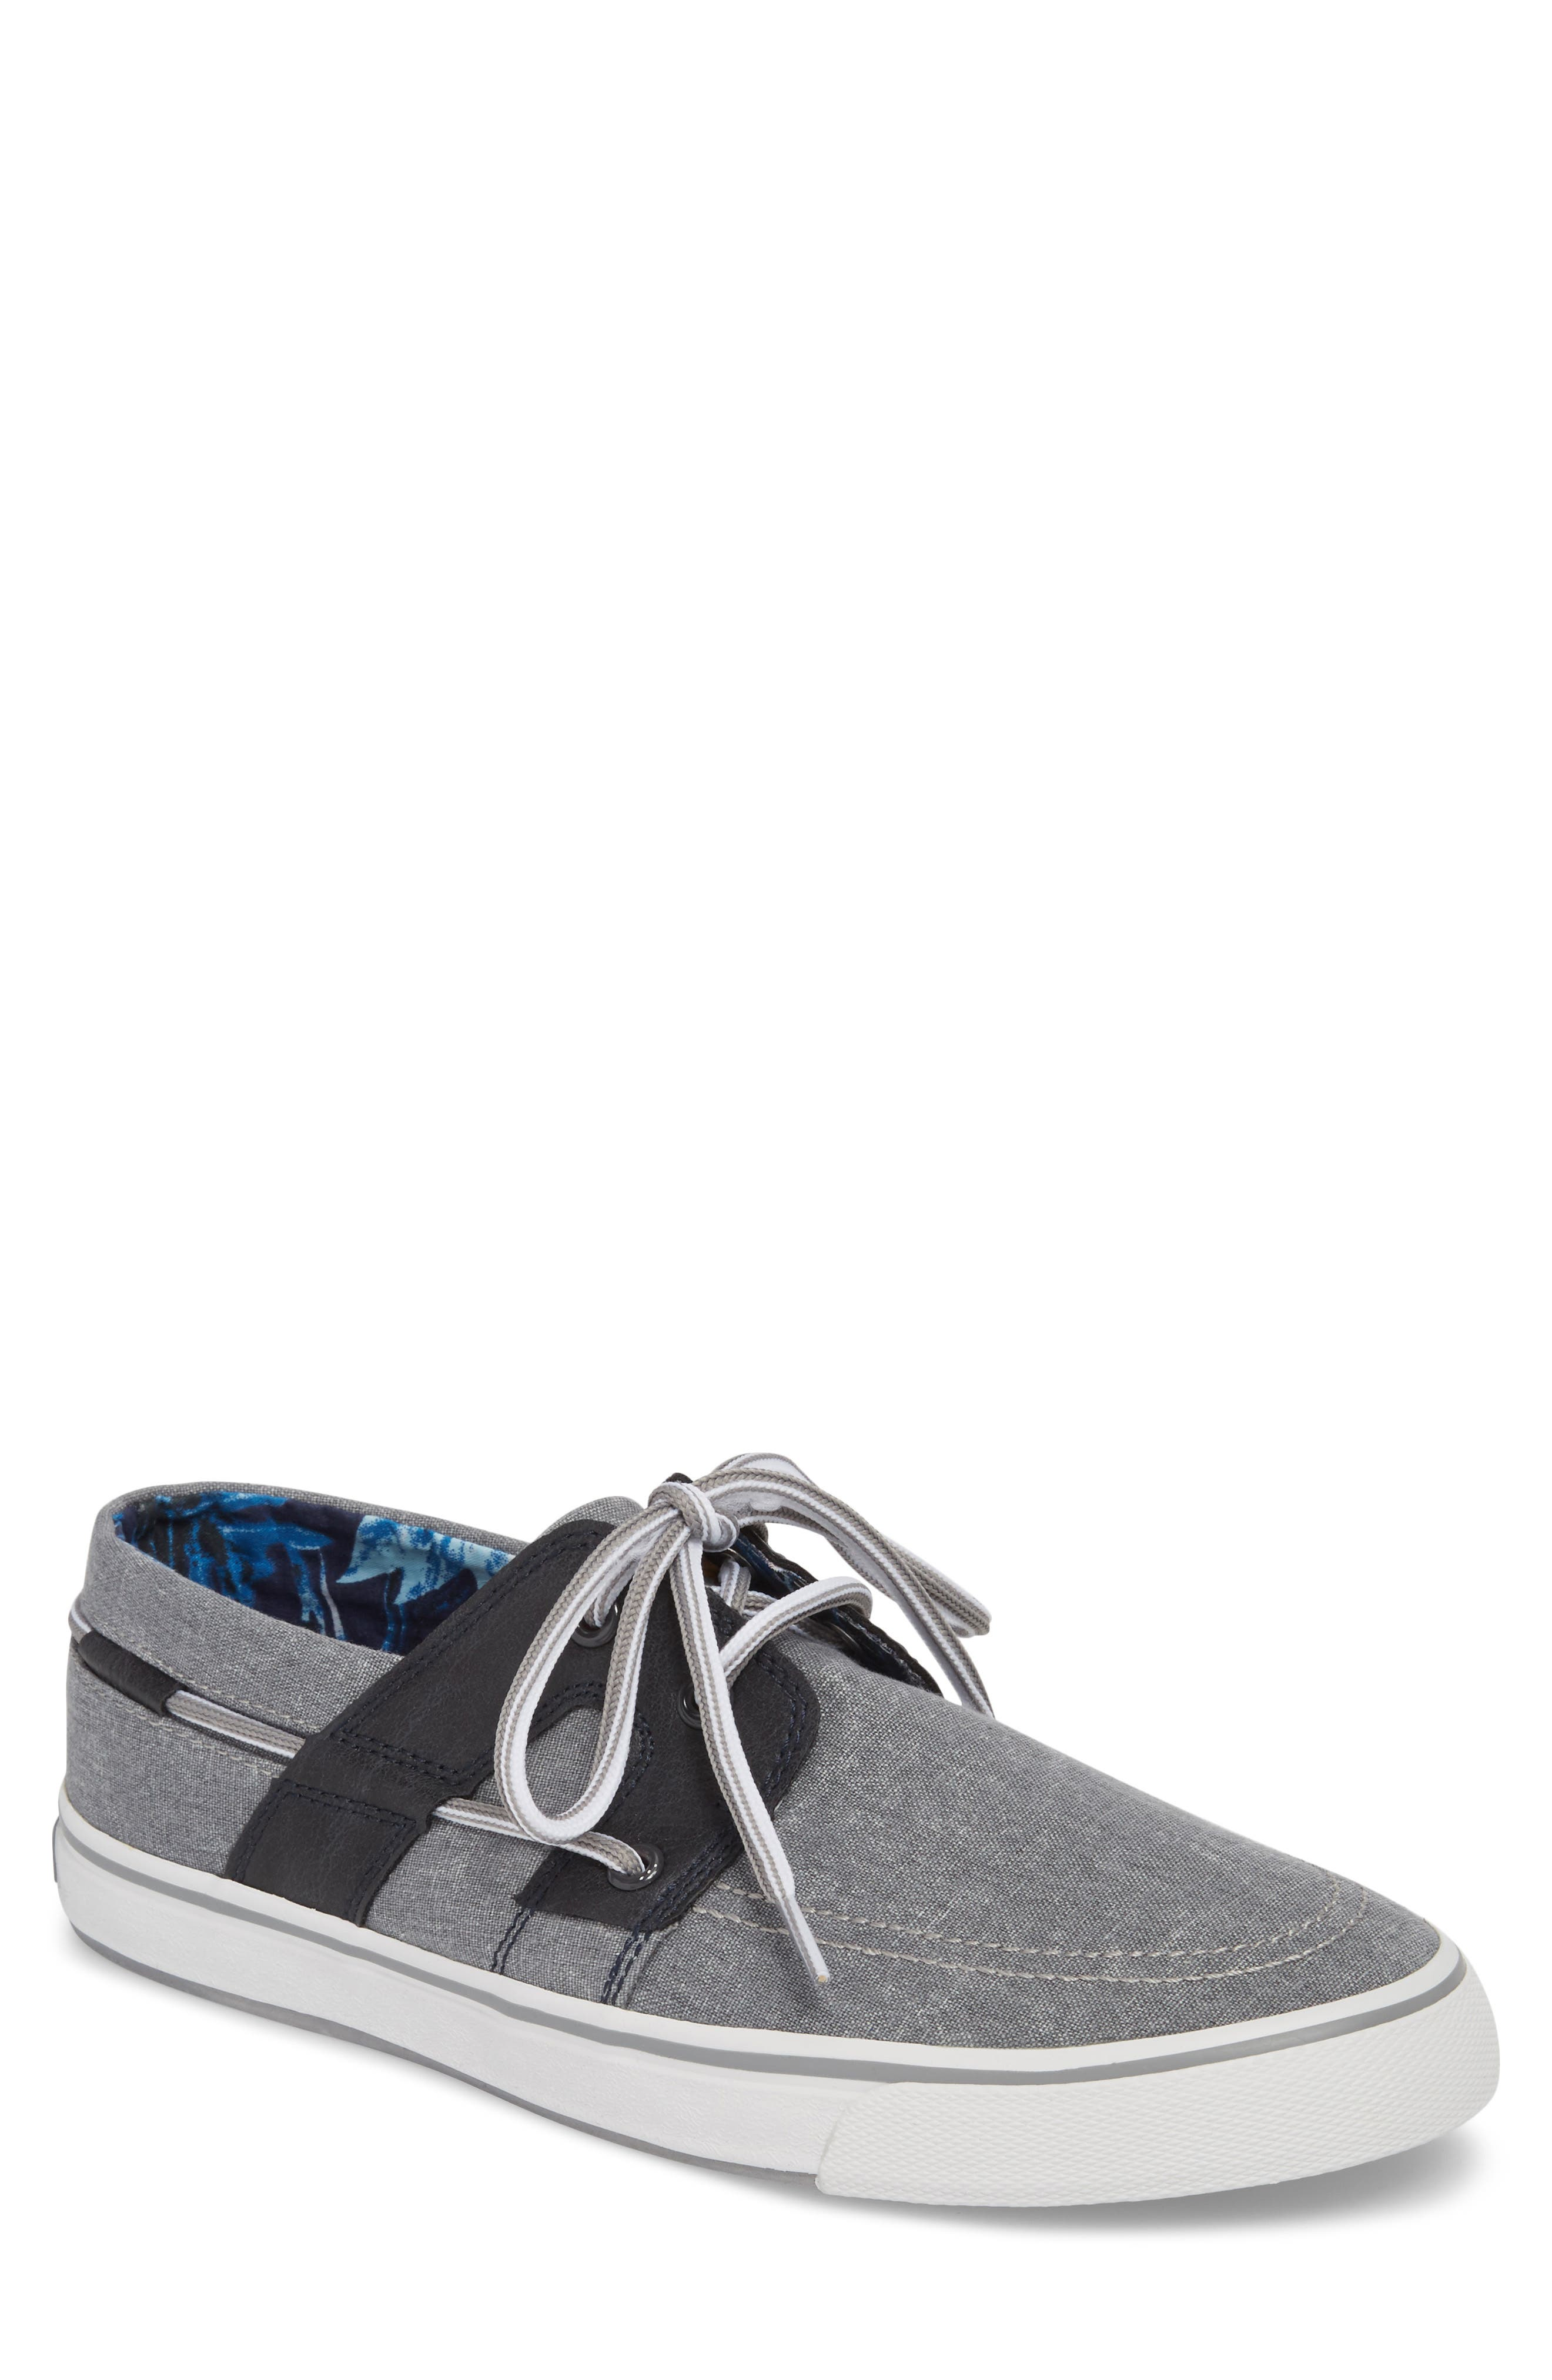 Stripe Breaker Sneaker,                             Main thumbnail 1, color,                             GREY/ BLACK LINEN/ LEATHER